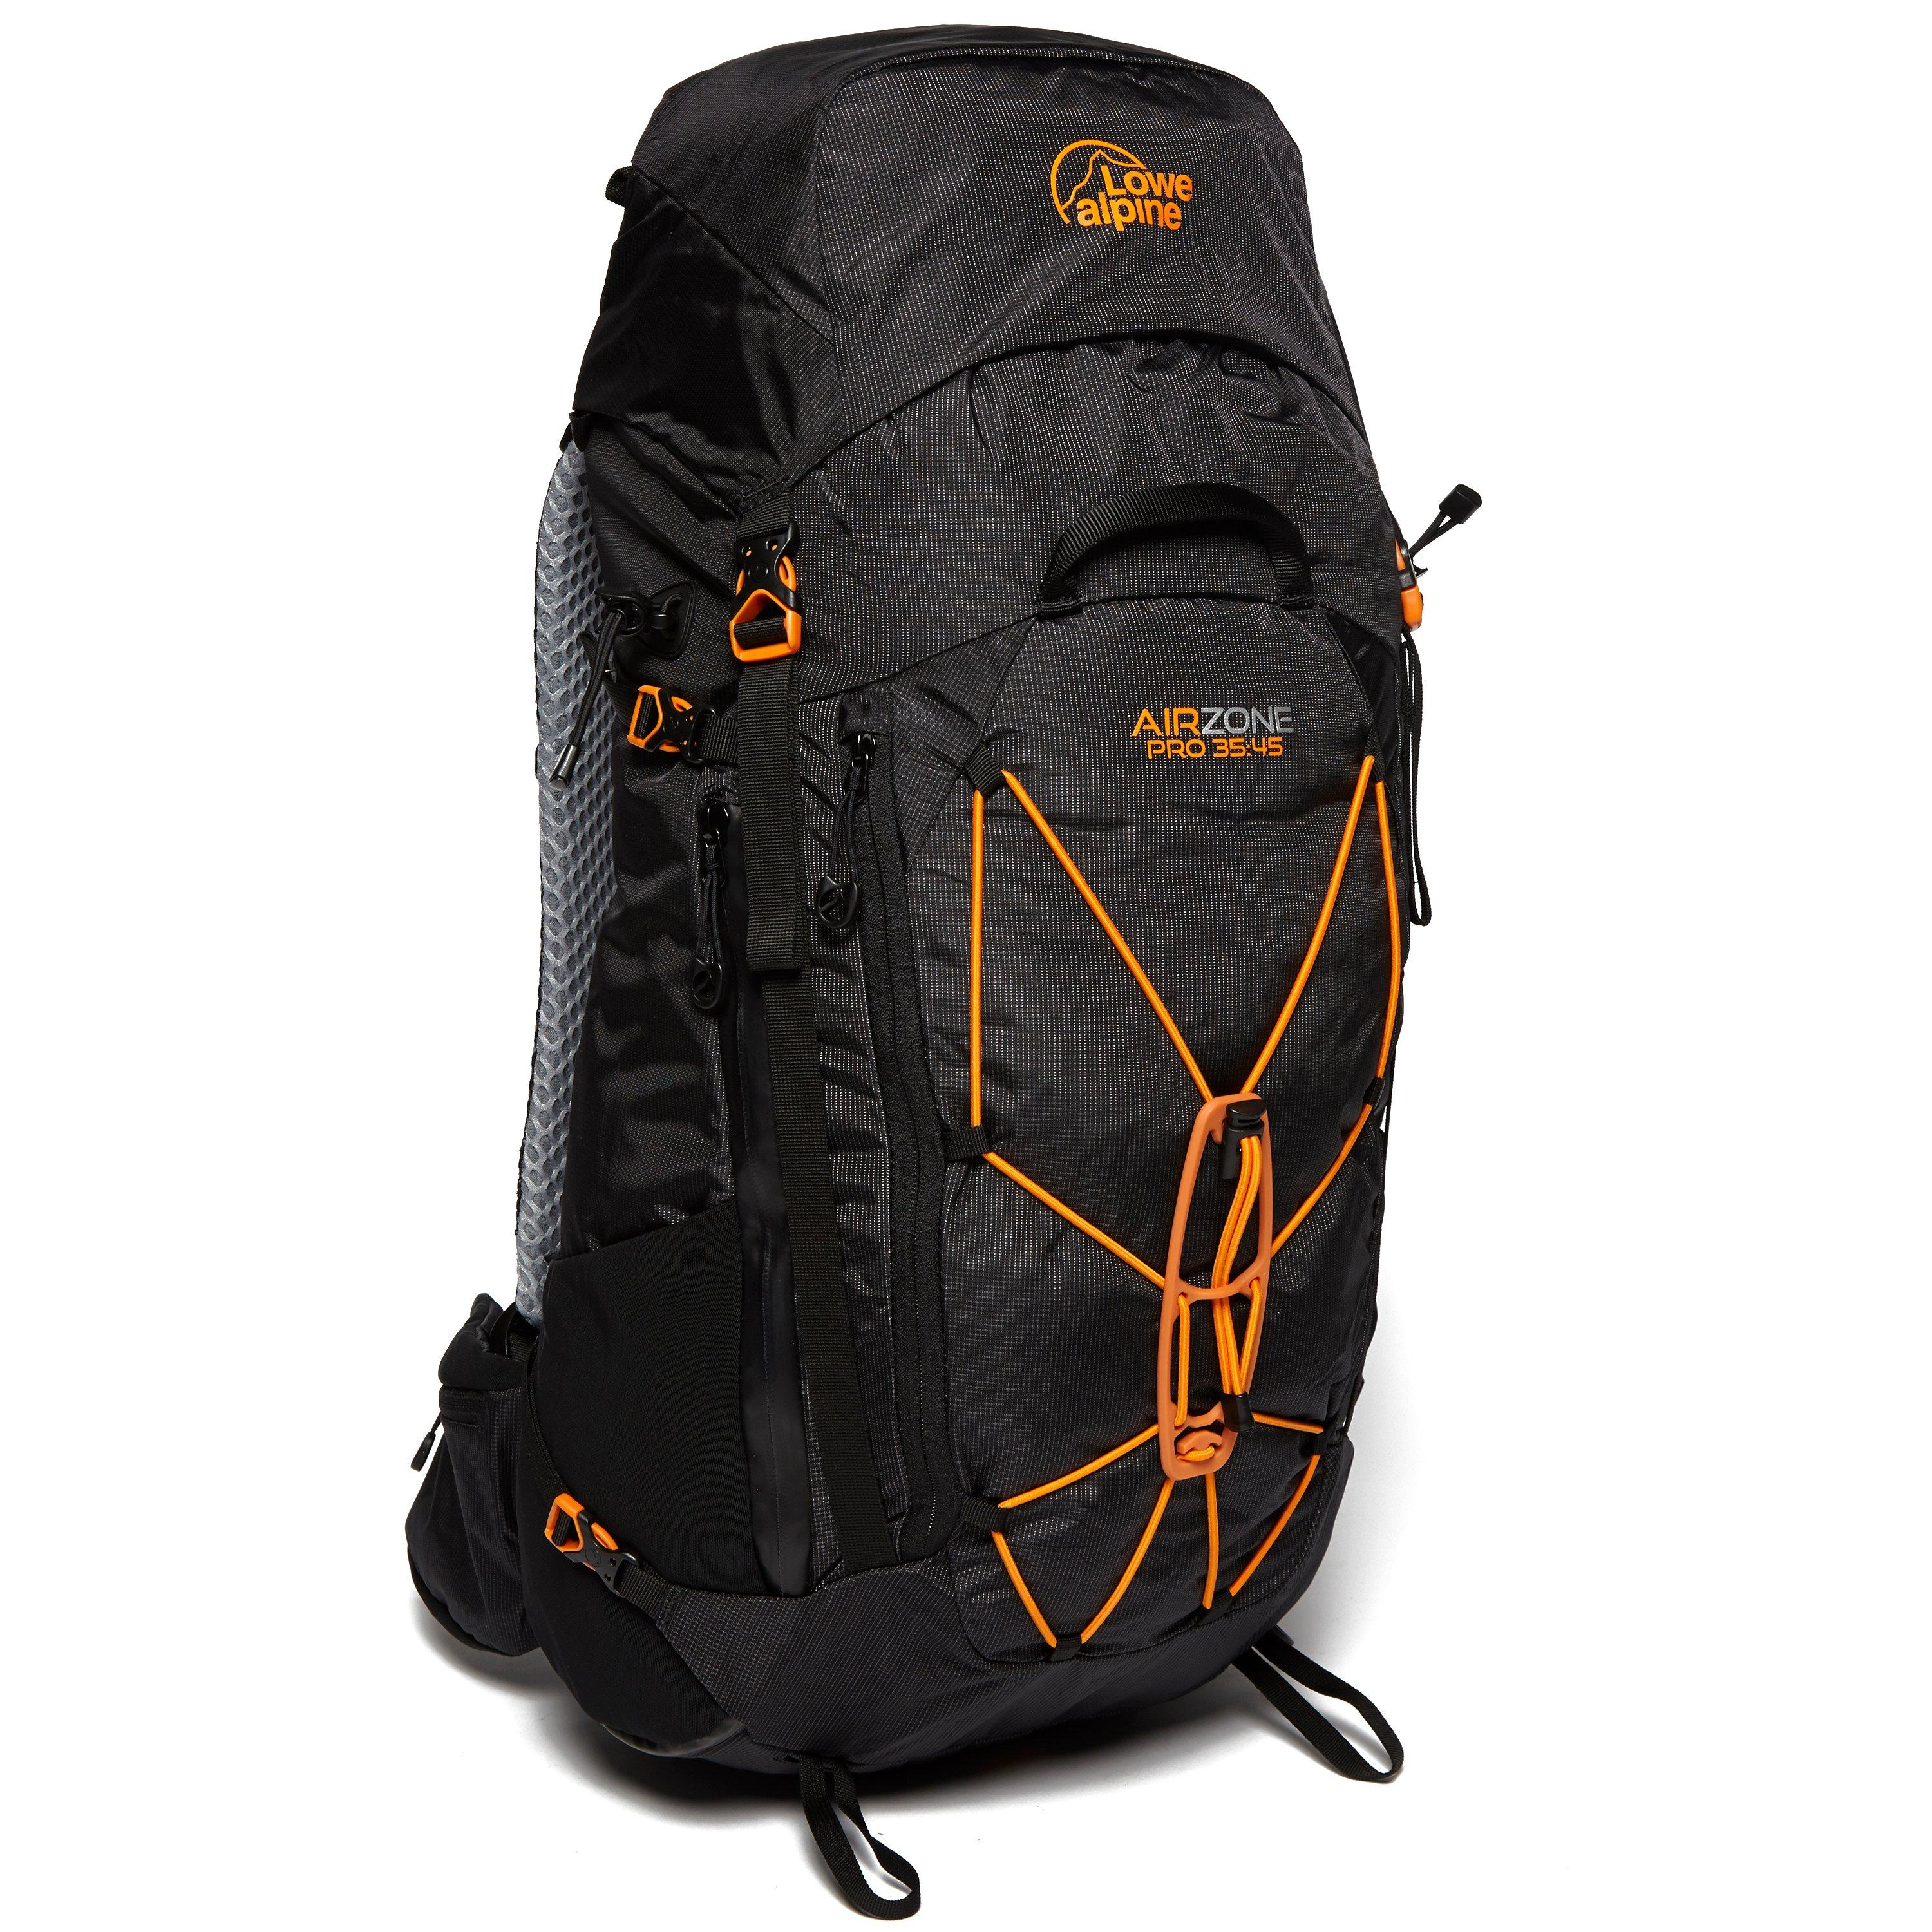 fc8ee47cda9 Lowe Alpine AirZone Pro 35:45L Backpack